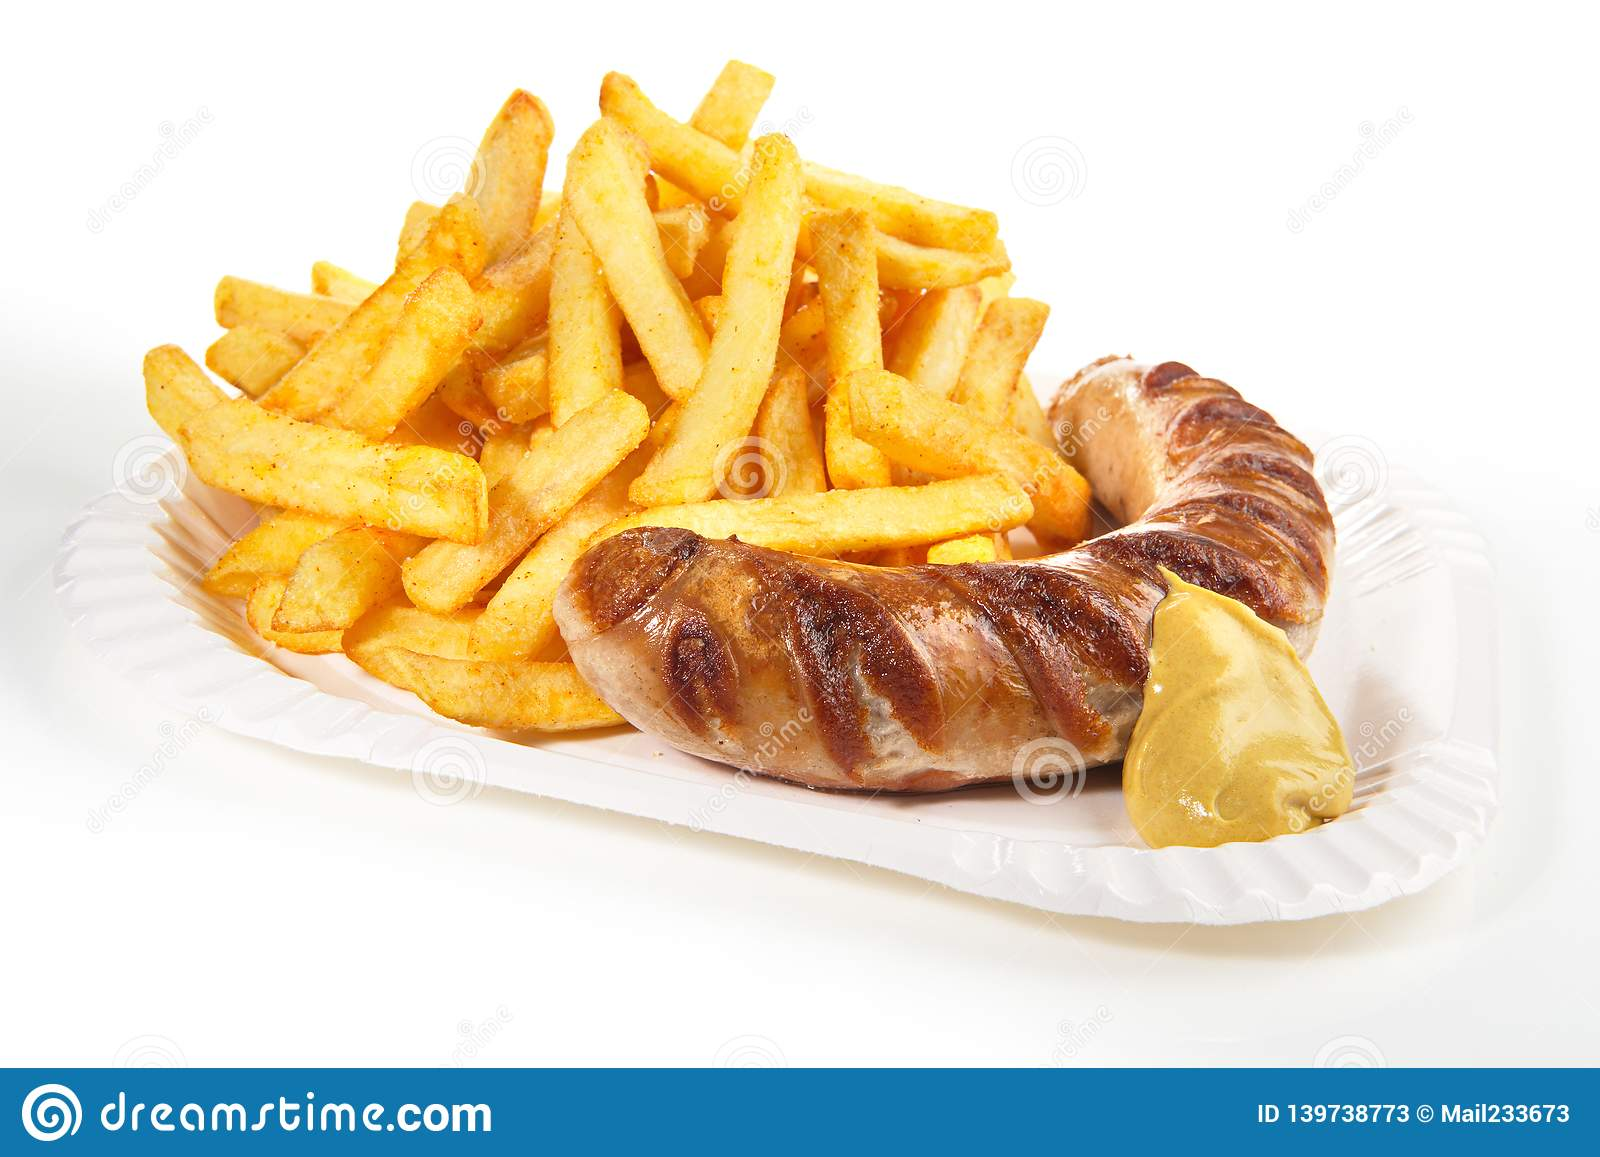 Sausage with Mustard and French Fries